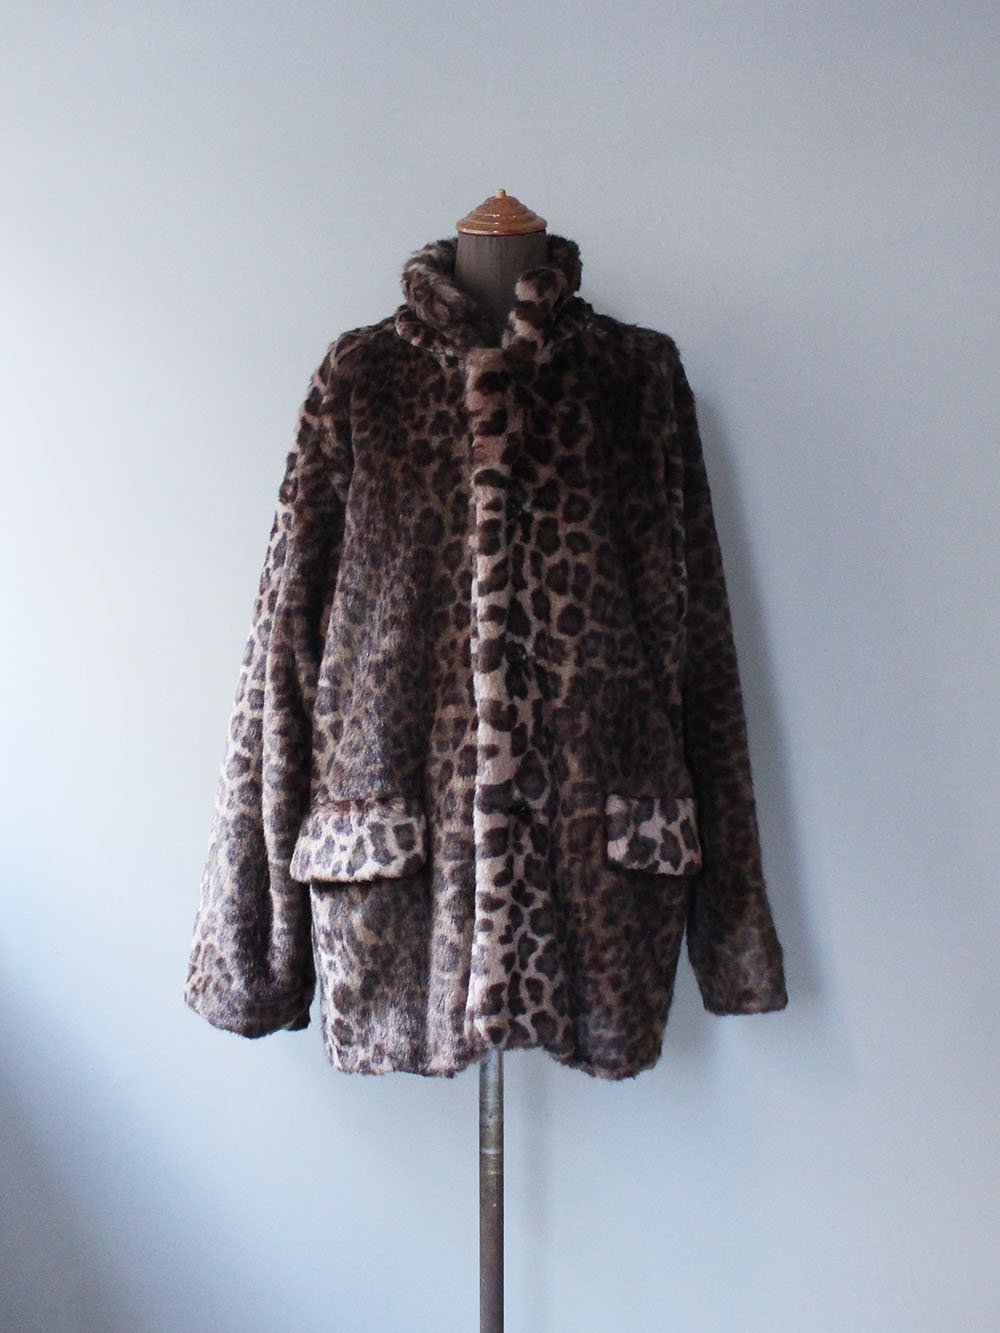 """<img class='new_mark_img1' src='https://img.shop-pro.jp/img/new/icons8.gif' style='border:none;display:inline;margin:0px;padding:0px;width:auto;' />Needles """" S.C. CAR COAT - FAUX FUR (BROWN)"""""""